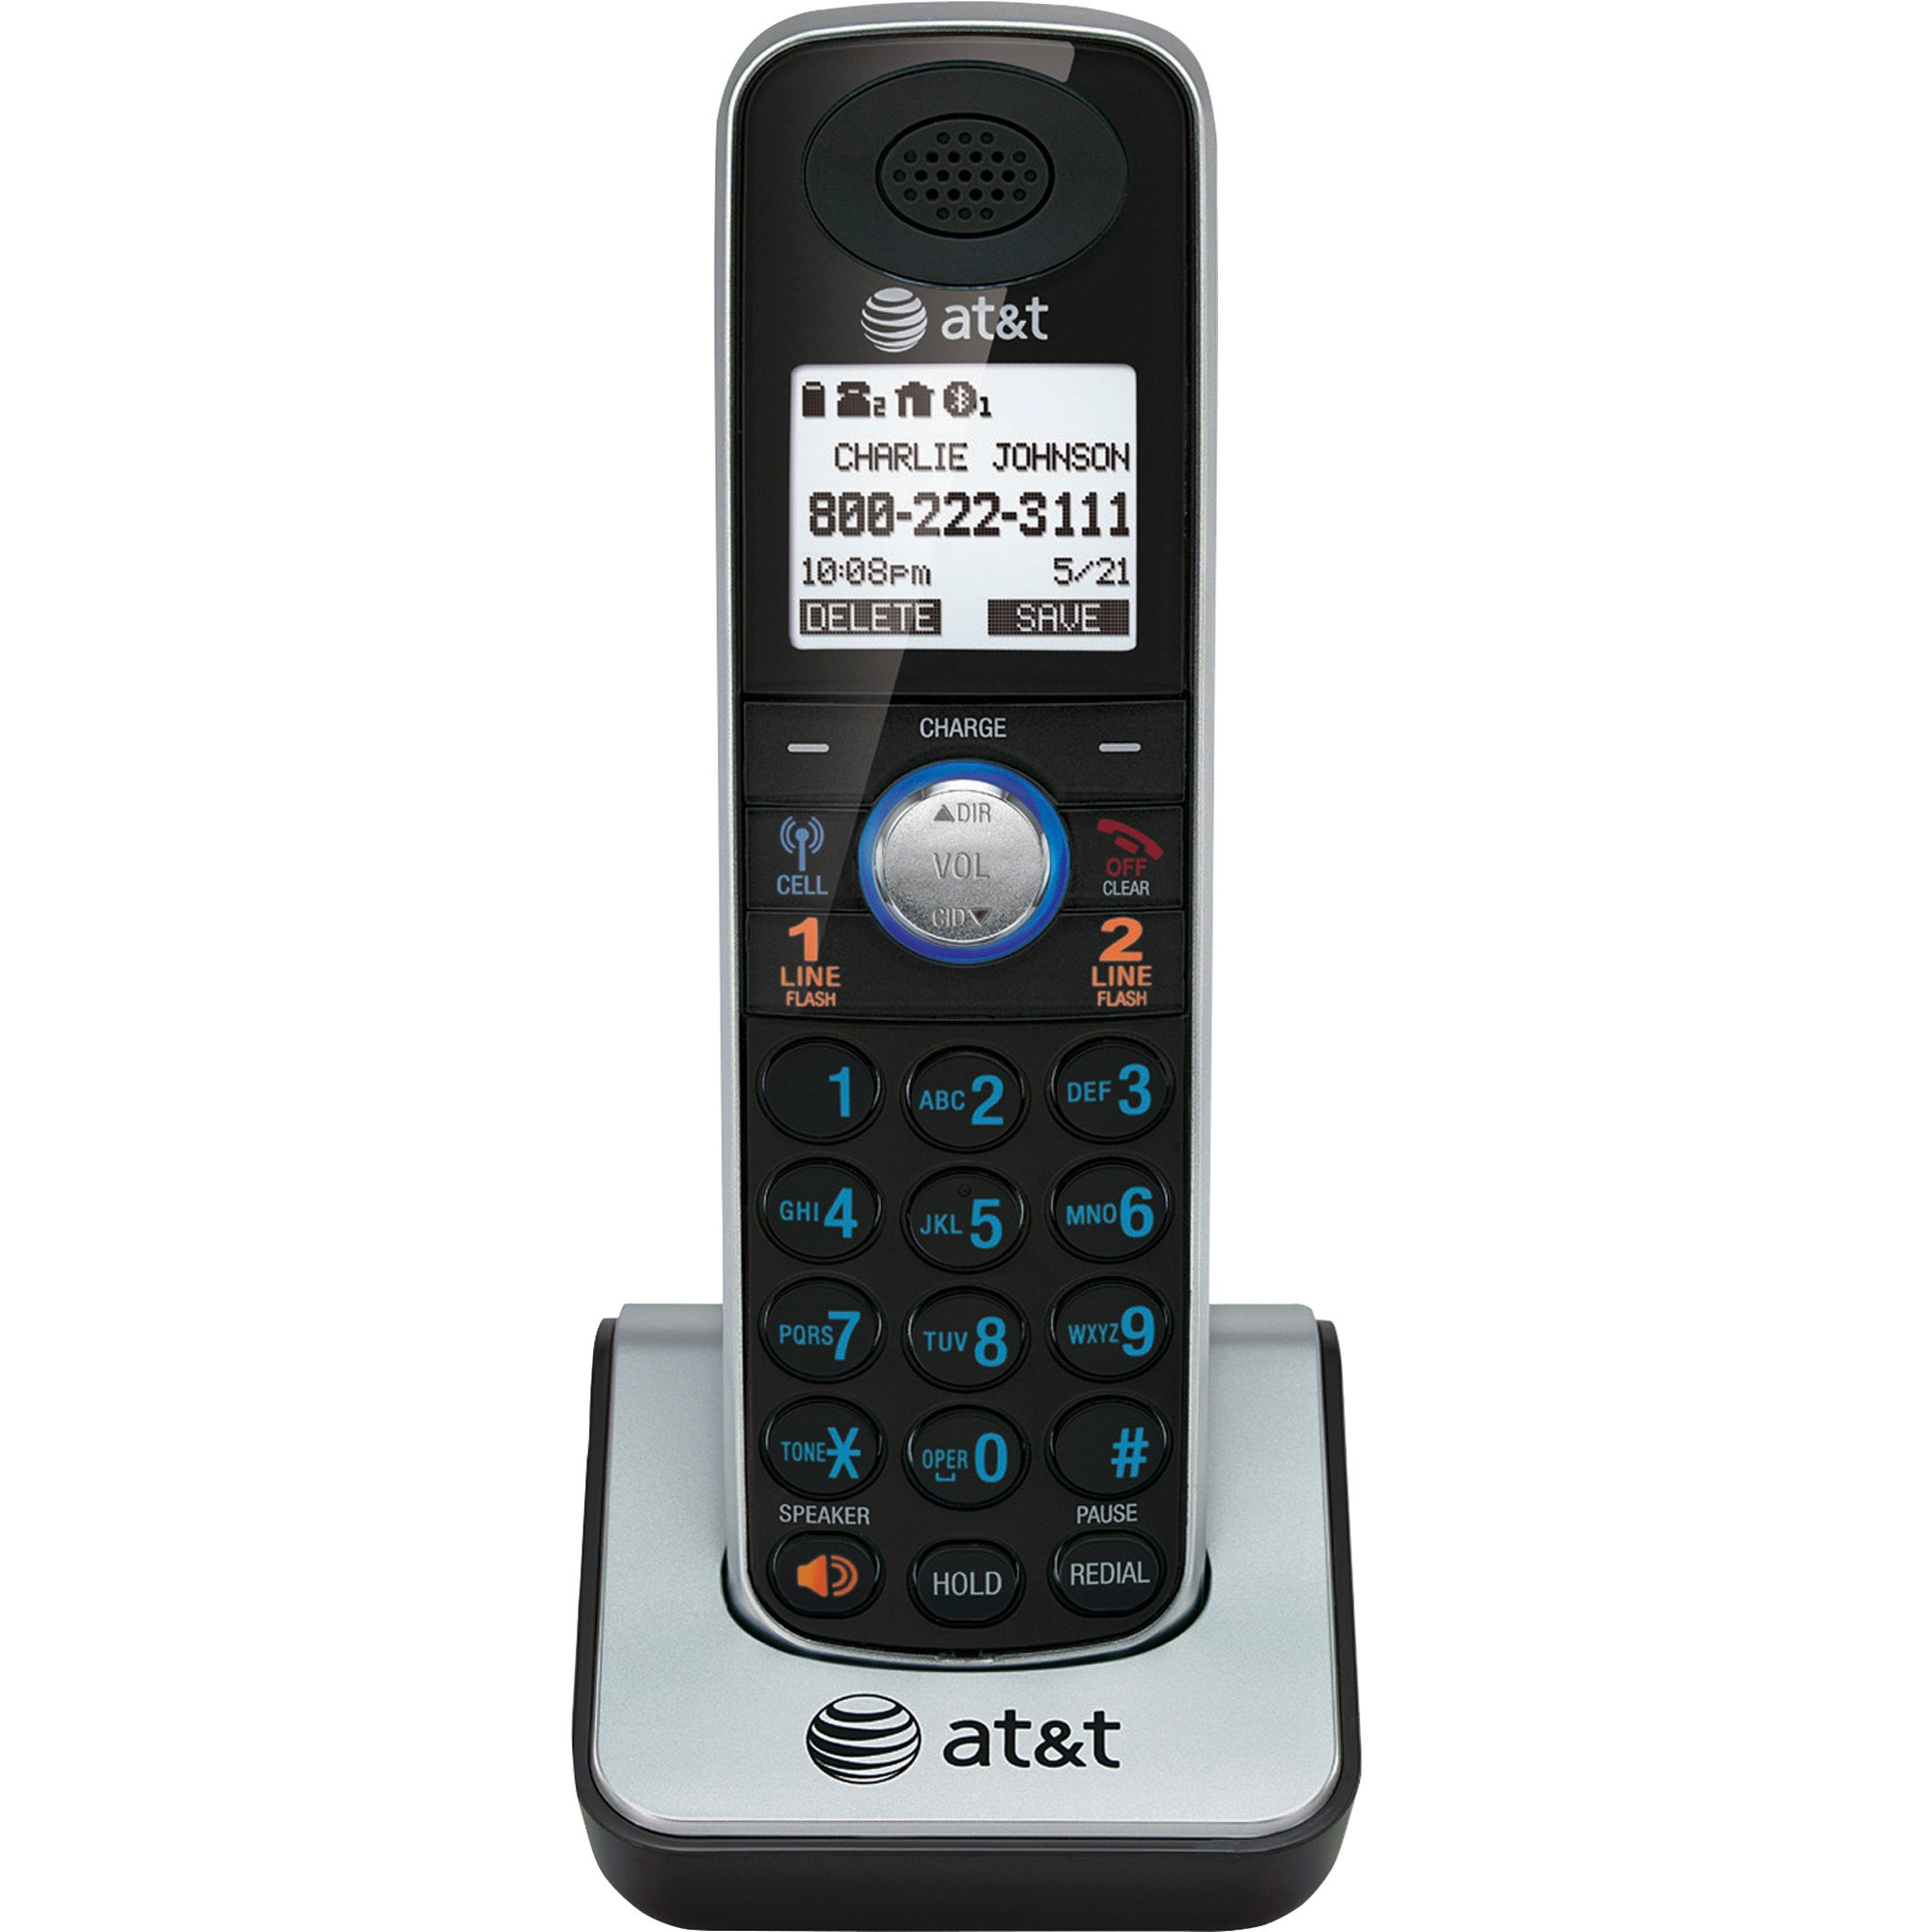 AT/&T TL86109 2-LINE DECT 6.0 PHONE SYSTEM BRAND NEW BLUETOOTH 2 CORDLESS